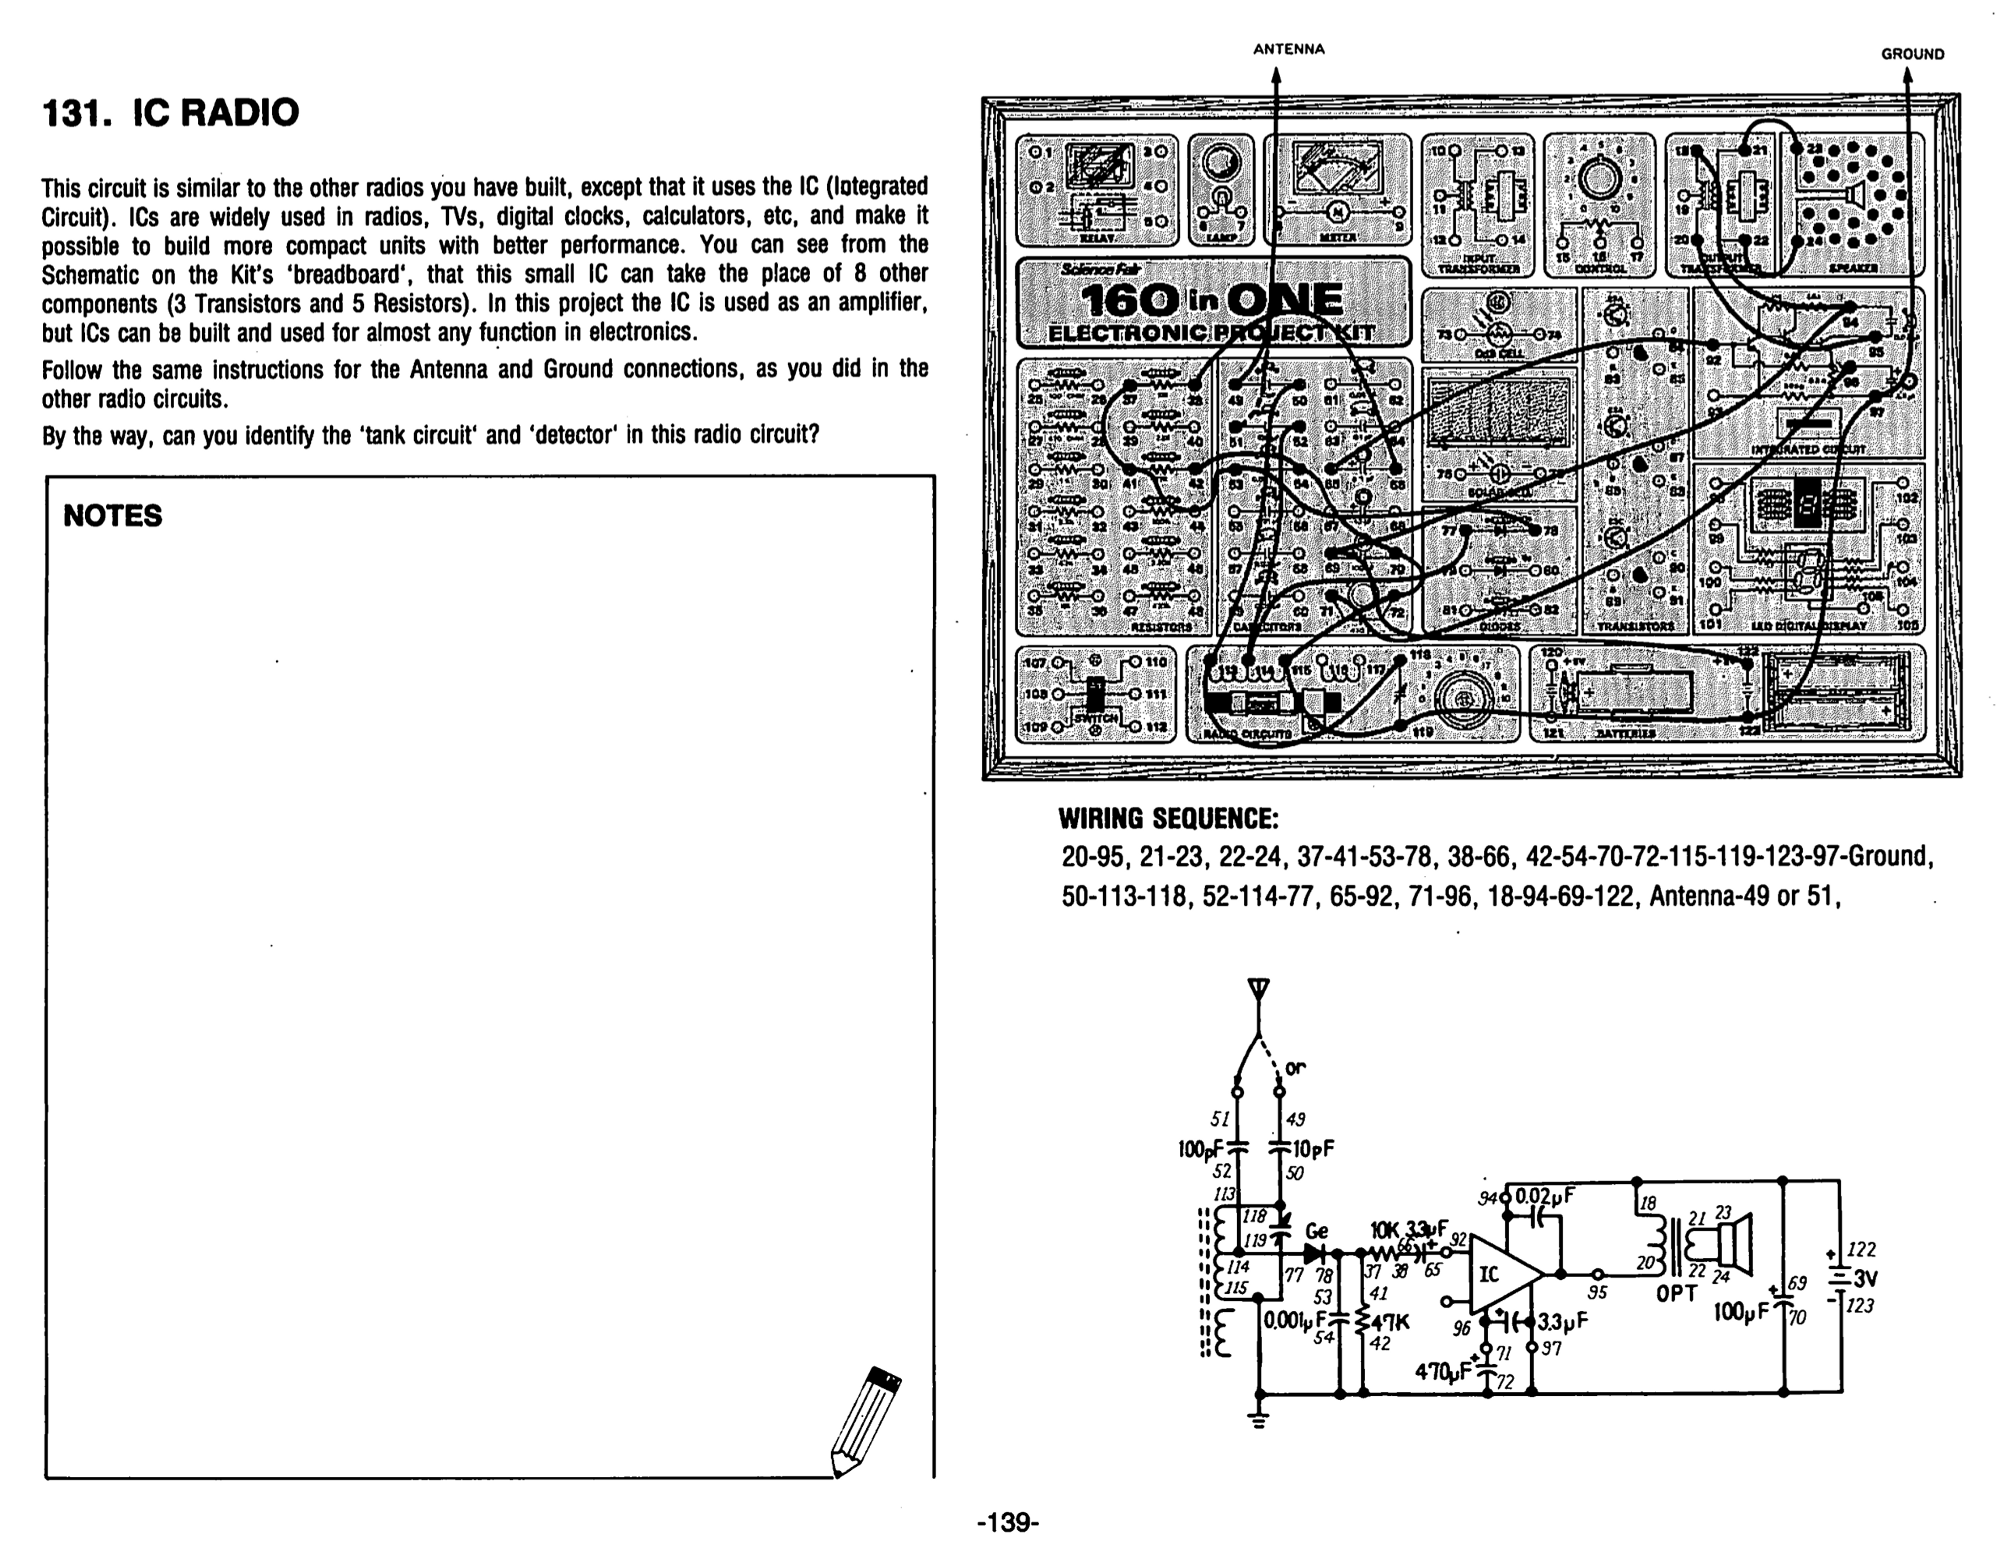 Electronic Project Kits Hands On With A Vintage 160 In 1 Precision Receiver Battery Low Voltage Alarm Circuit Diagrams Interesting Modern Times It Is Fairly Obscure And Many Other Amplifiers Are Available Instead Can The Ic These Circuits Replaced Opamps